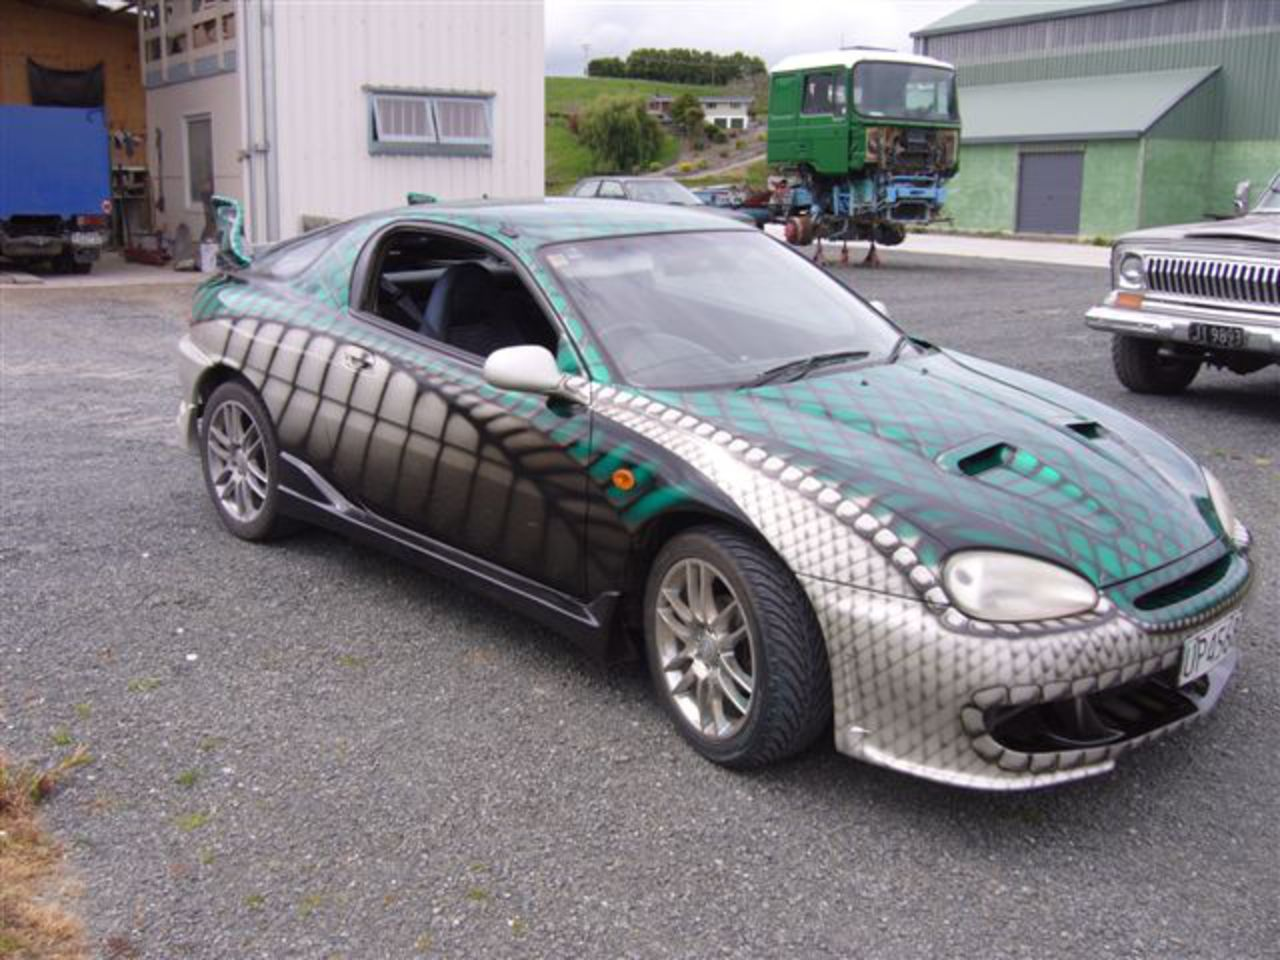 Mazda Coupe finished October 2006, with full custom body kit finished with a